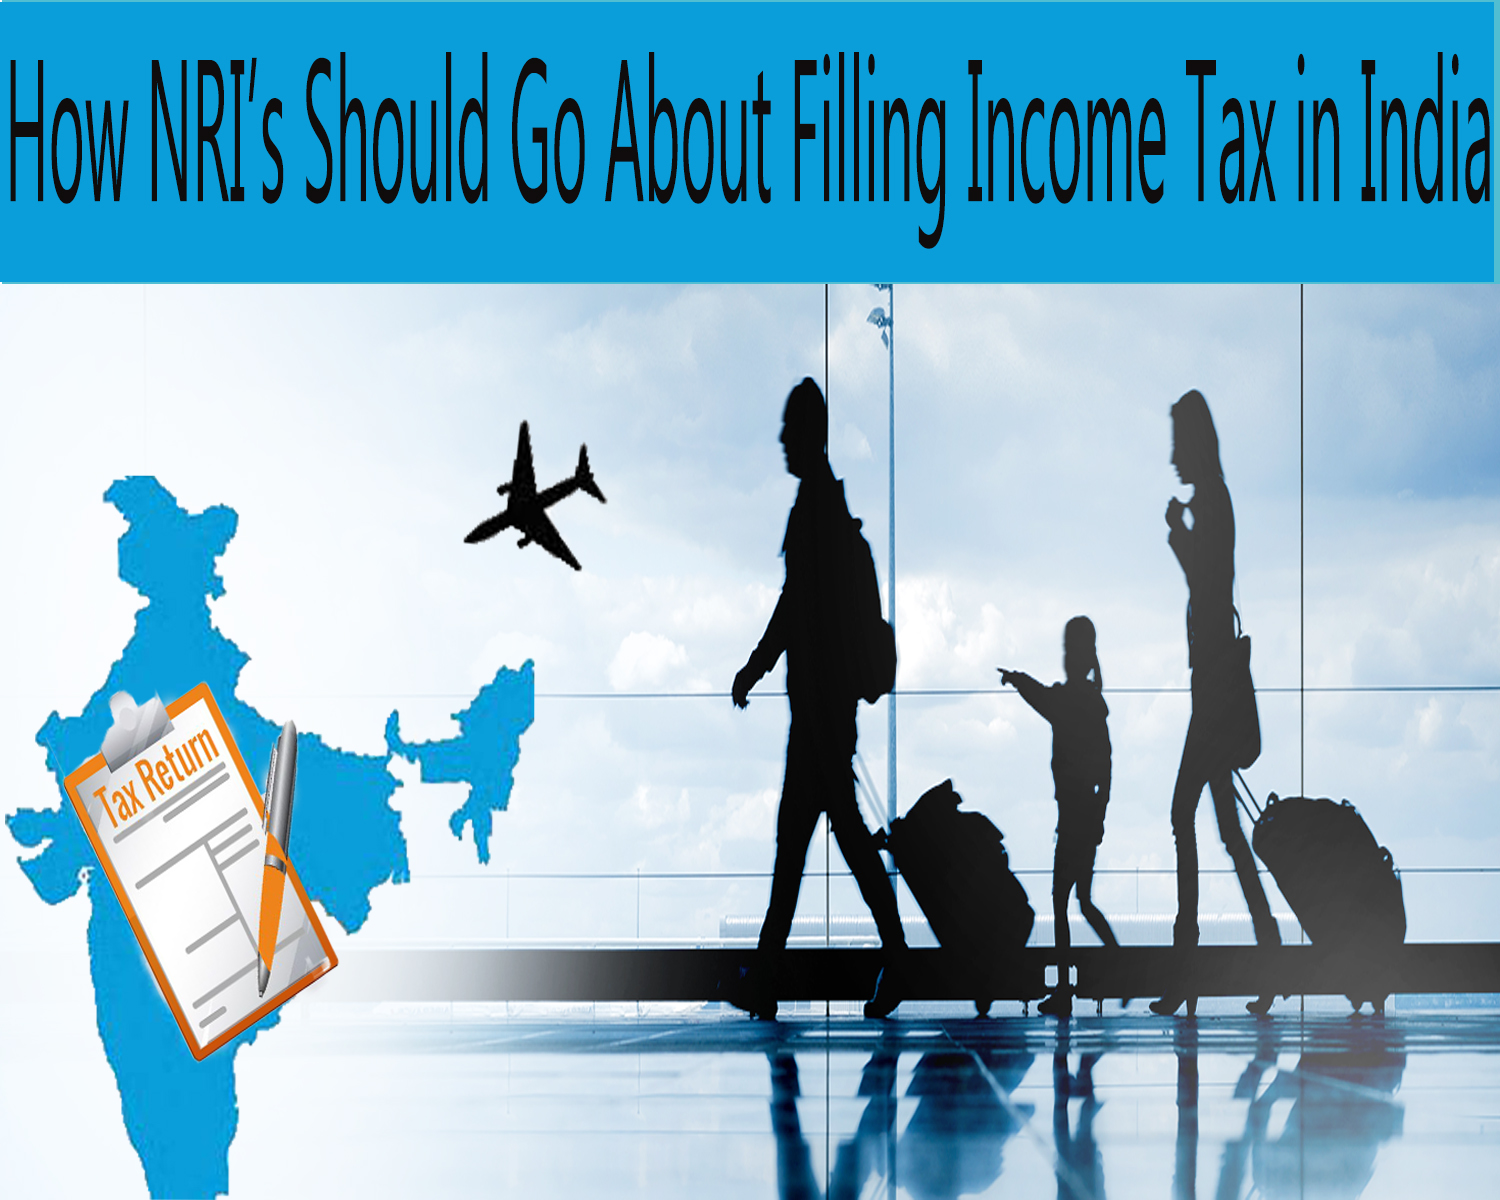 NRi and Filling up income tax